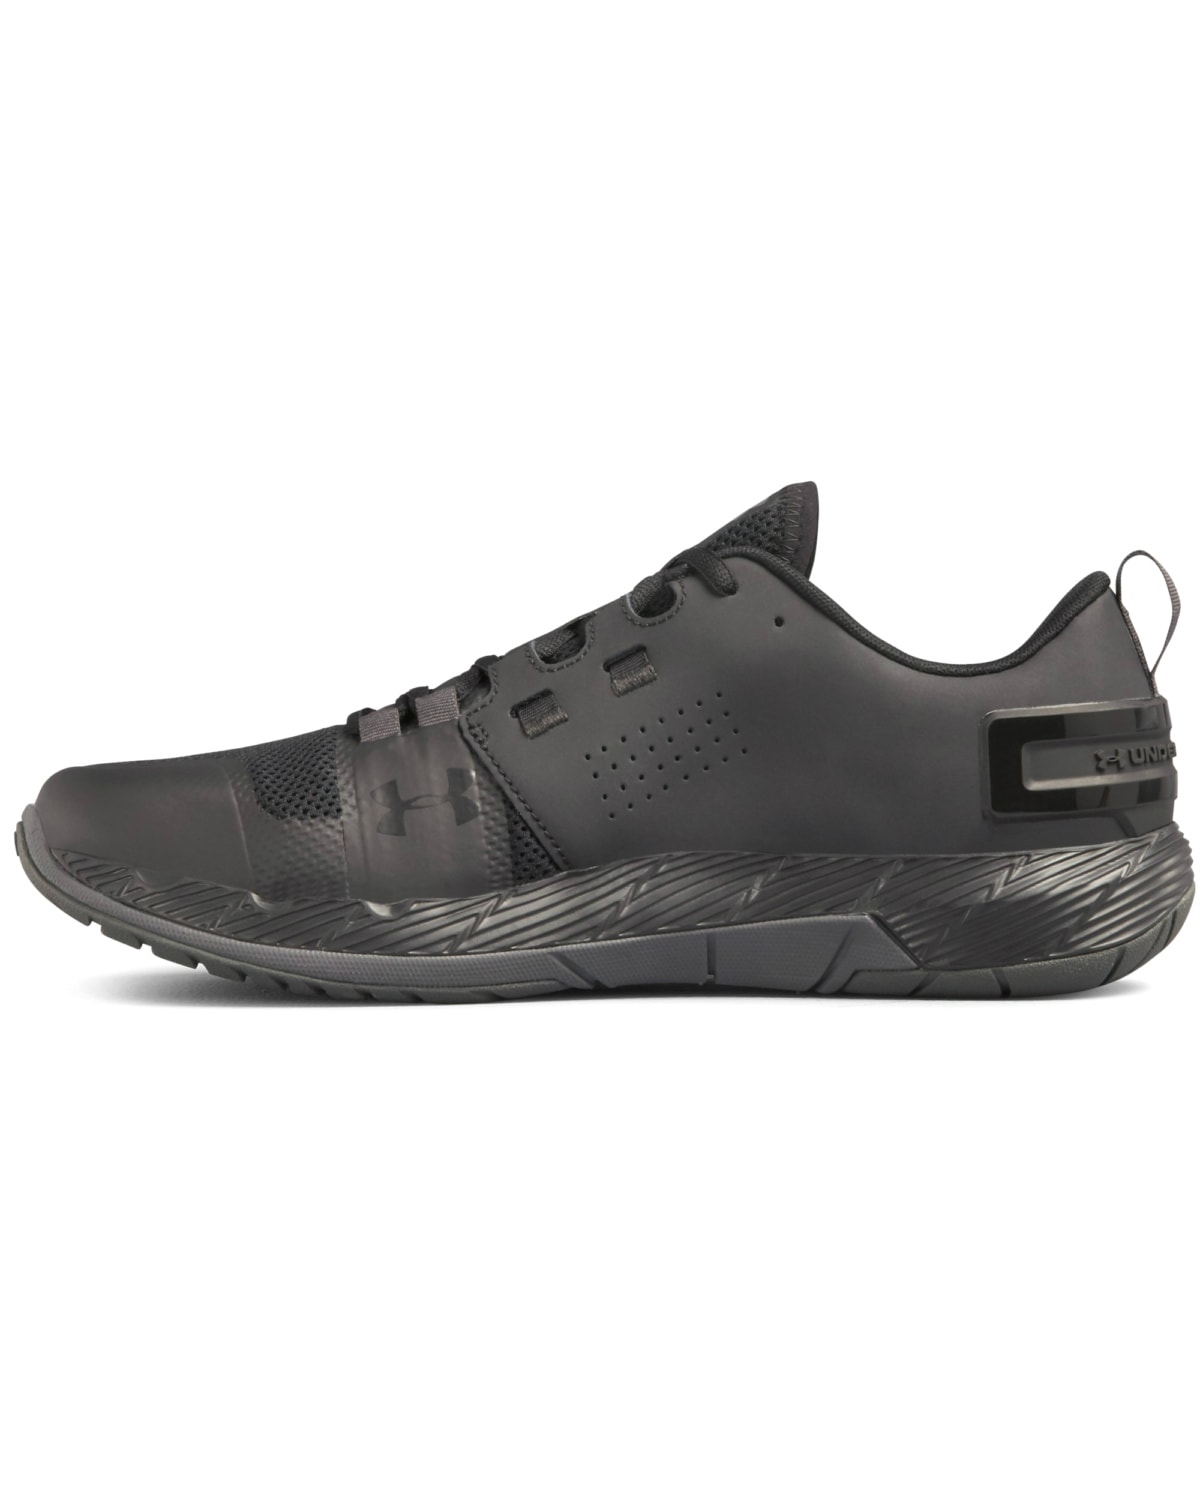 Under Armour Commit TR X NM 3021491-001